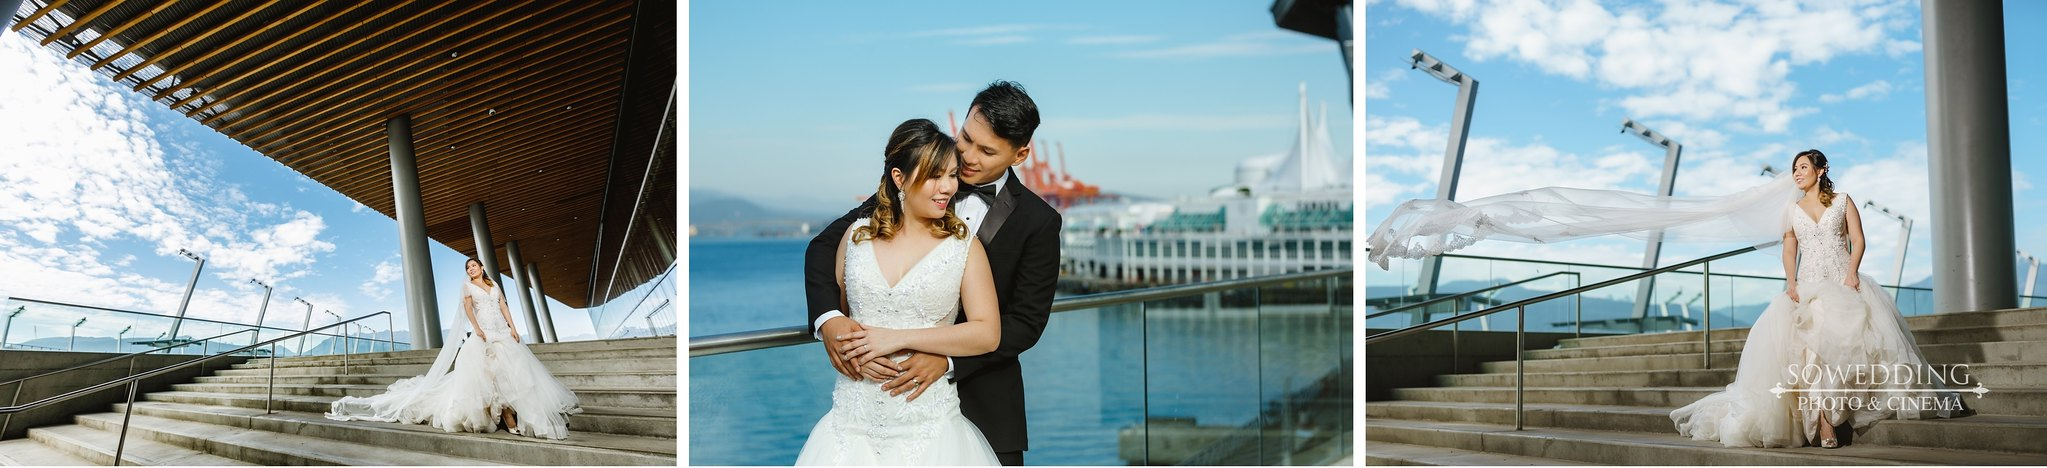 Melissa&Willy-Prewedding-HL-HD-0026